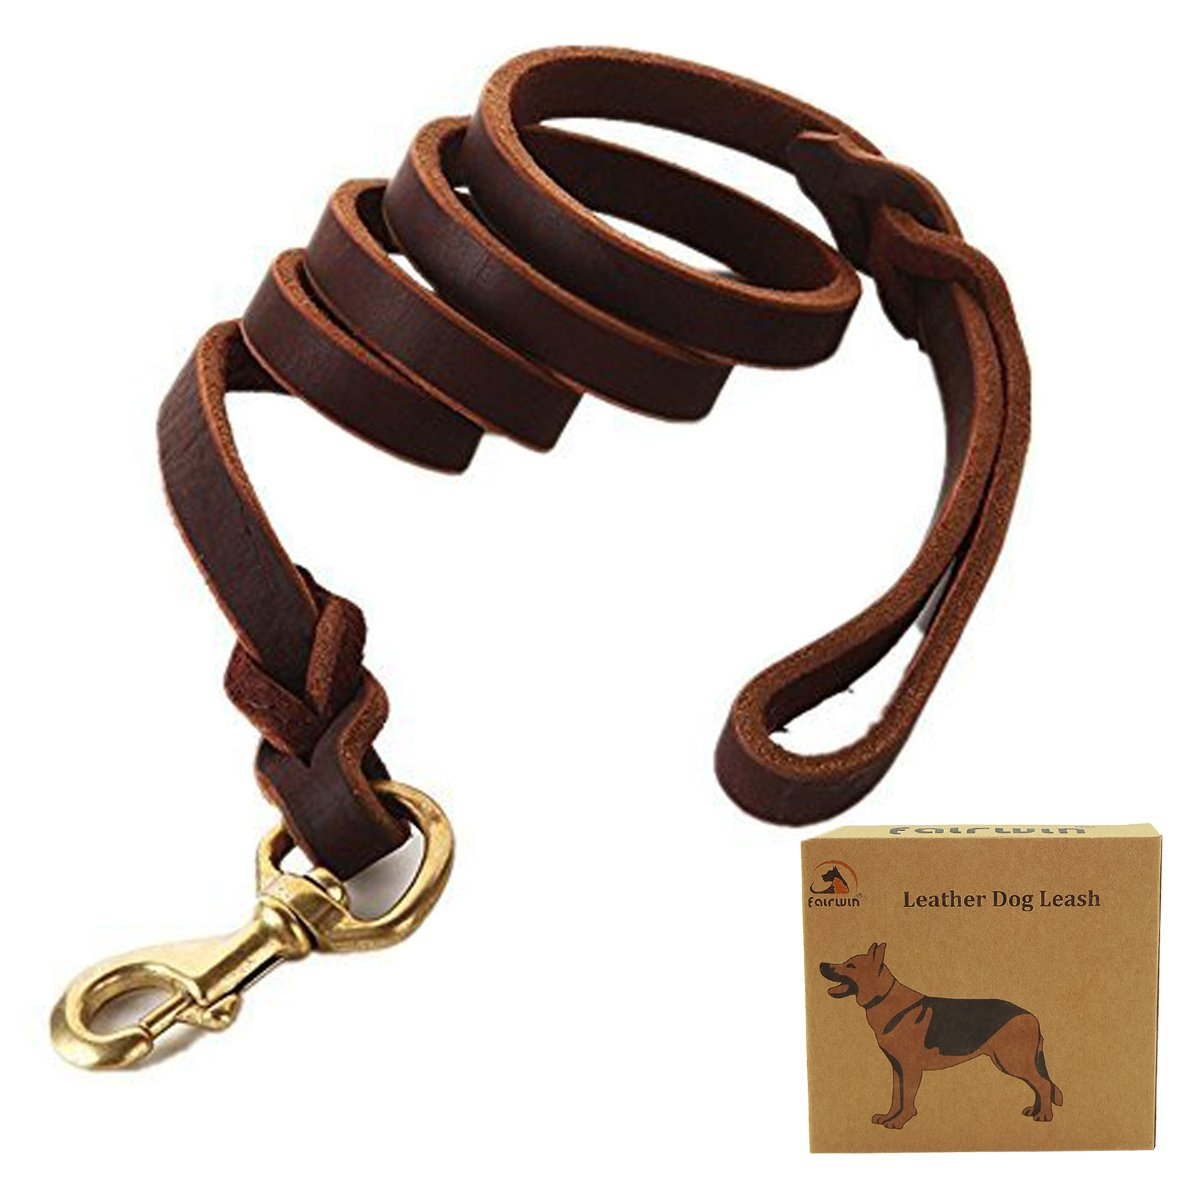 Fairwin Braided Leather Dog Training Leash 6 Foot - Best Dog Leather Leashes Heavy Duty for Large Small Dogs (3/4'' Width, Brown) 004 by Fairwin (Image #2)